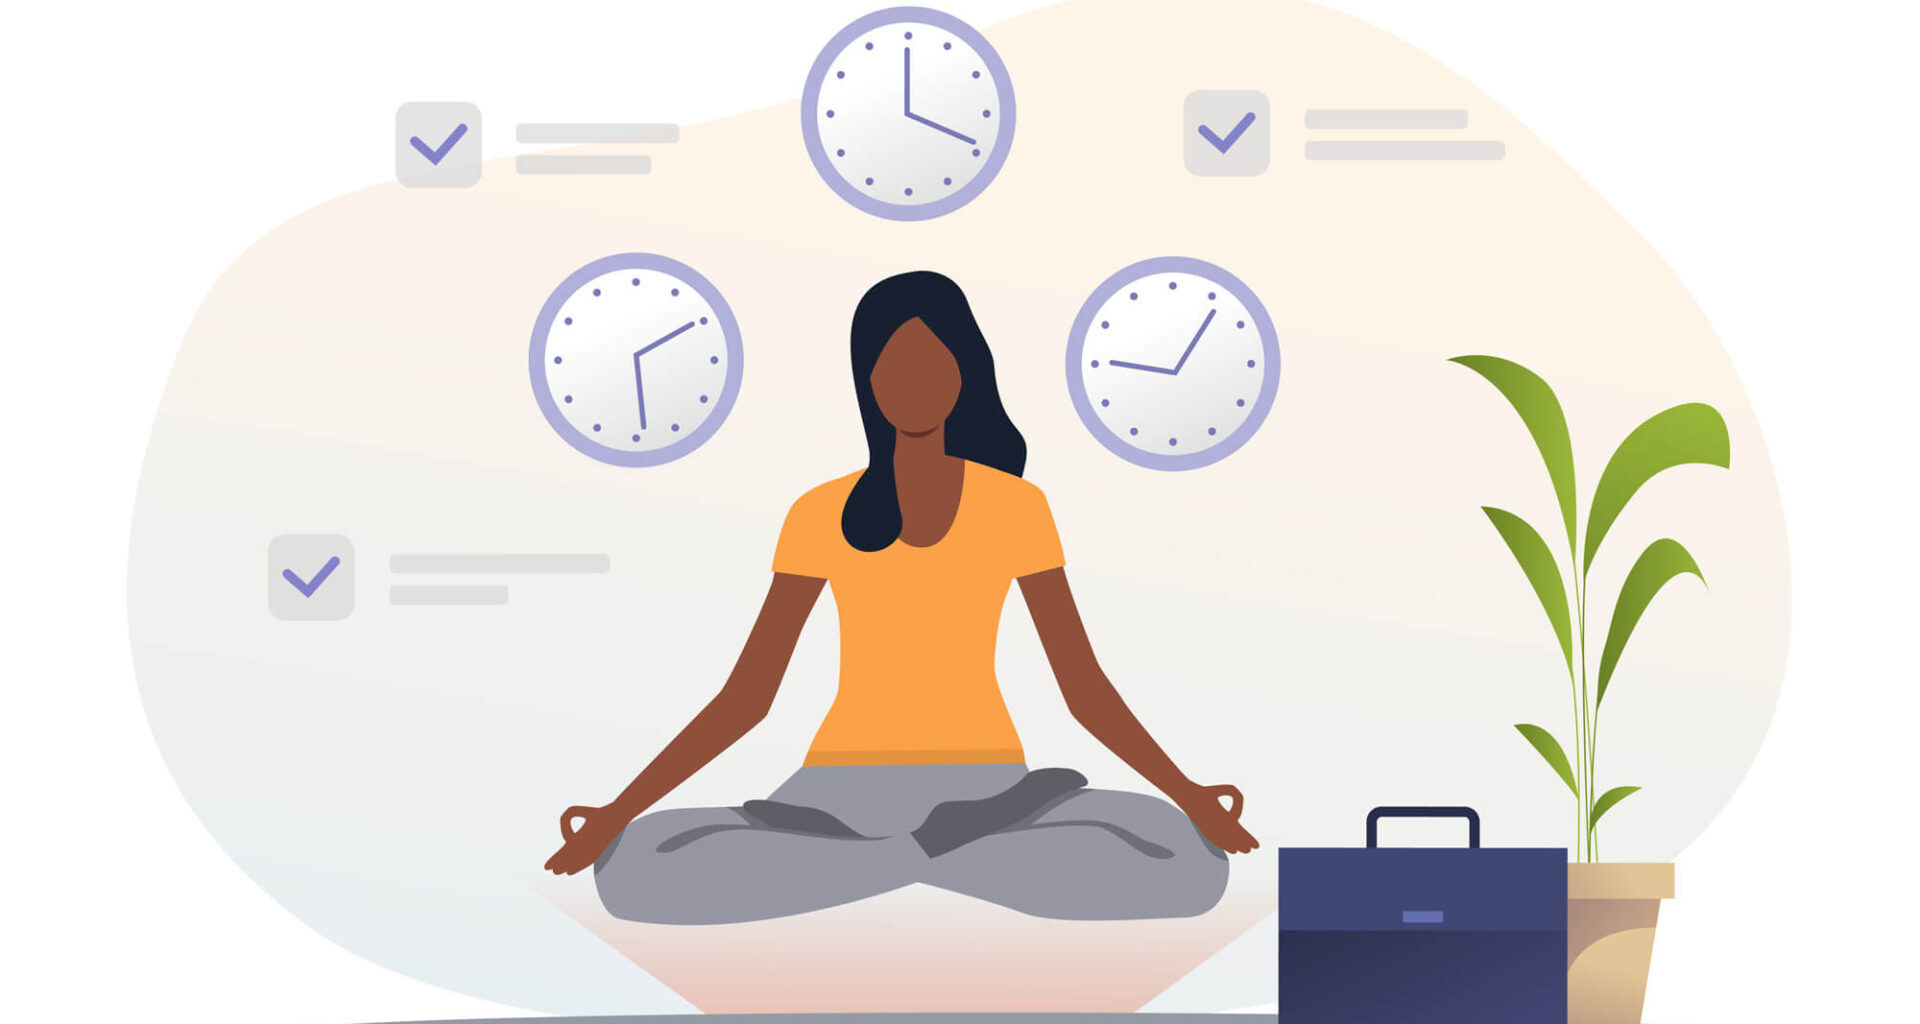 Your morning meditation should include thoughts and thinking